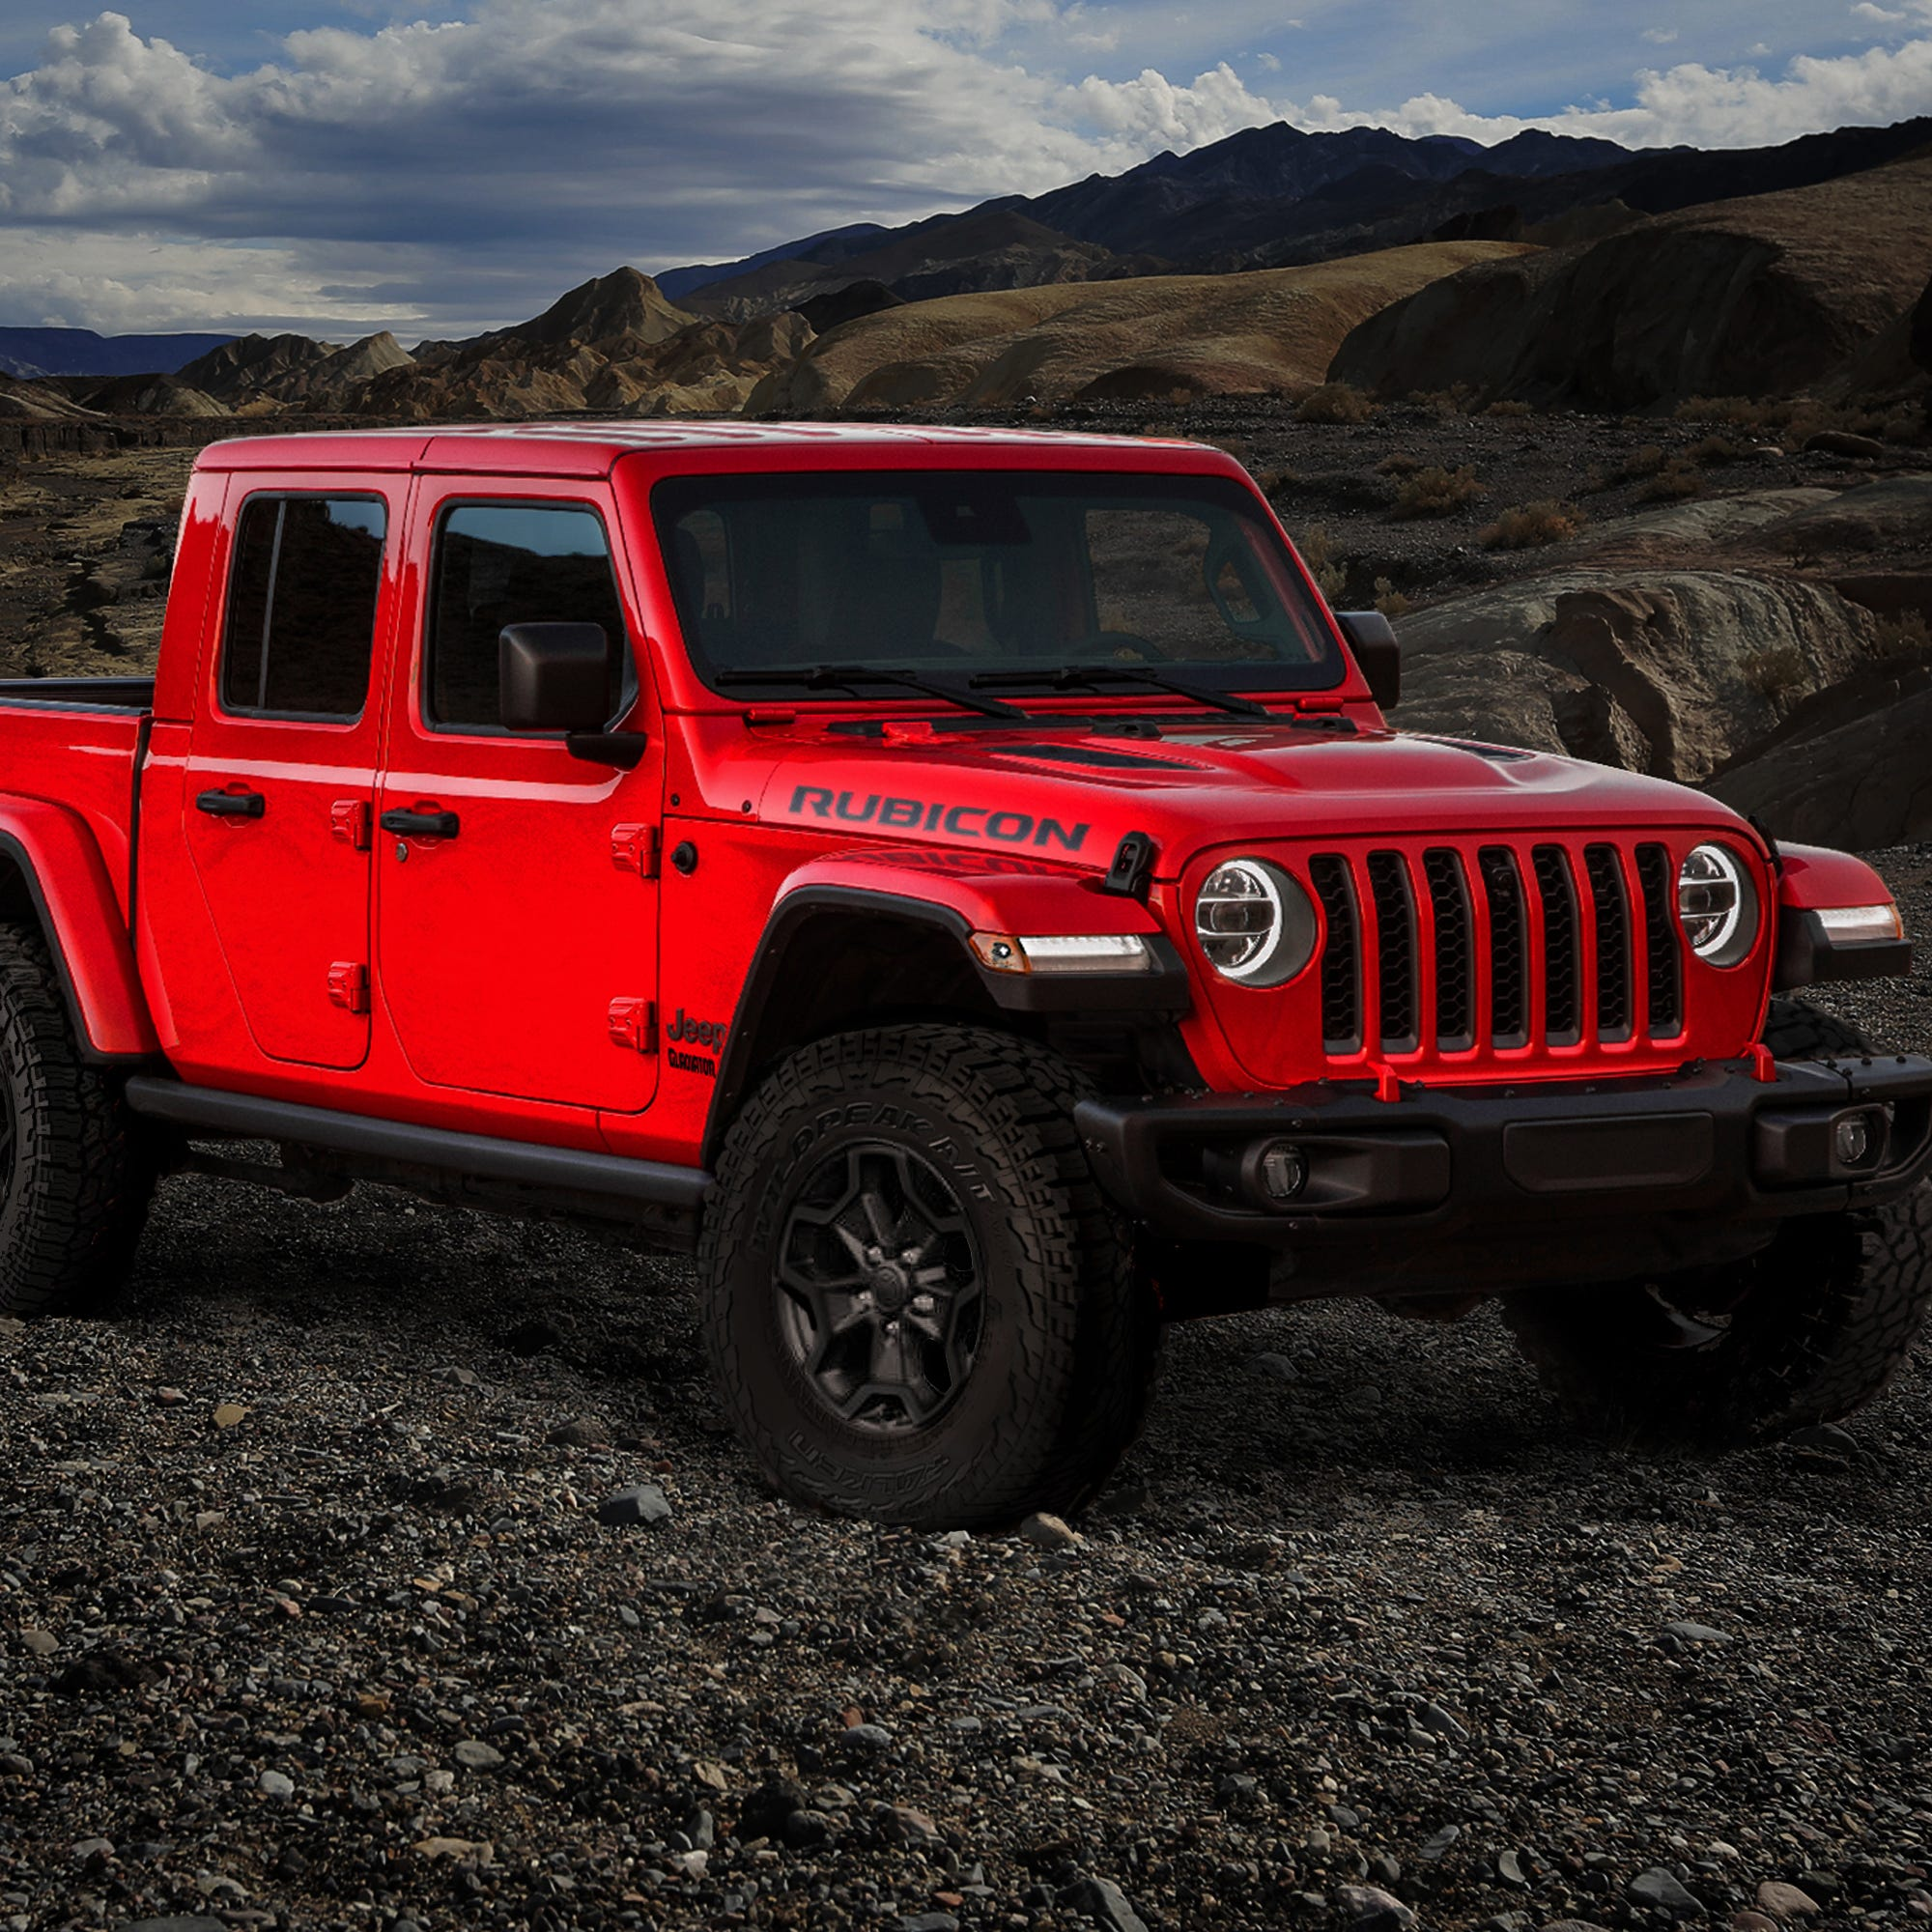 You're already too late to buy this Jeep Gladiator edition